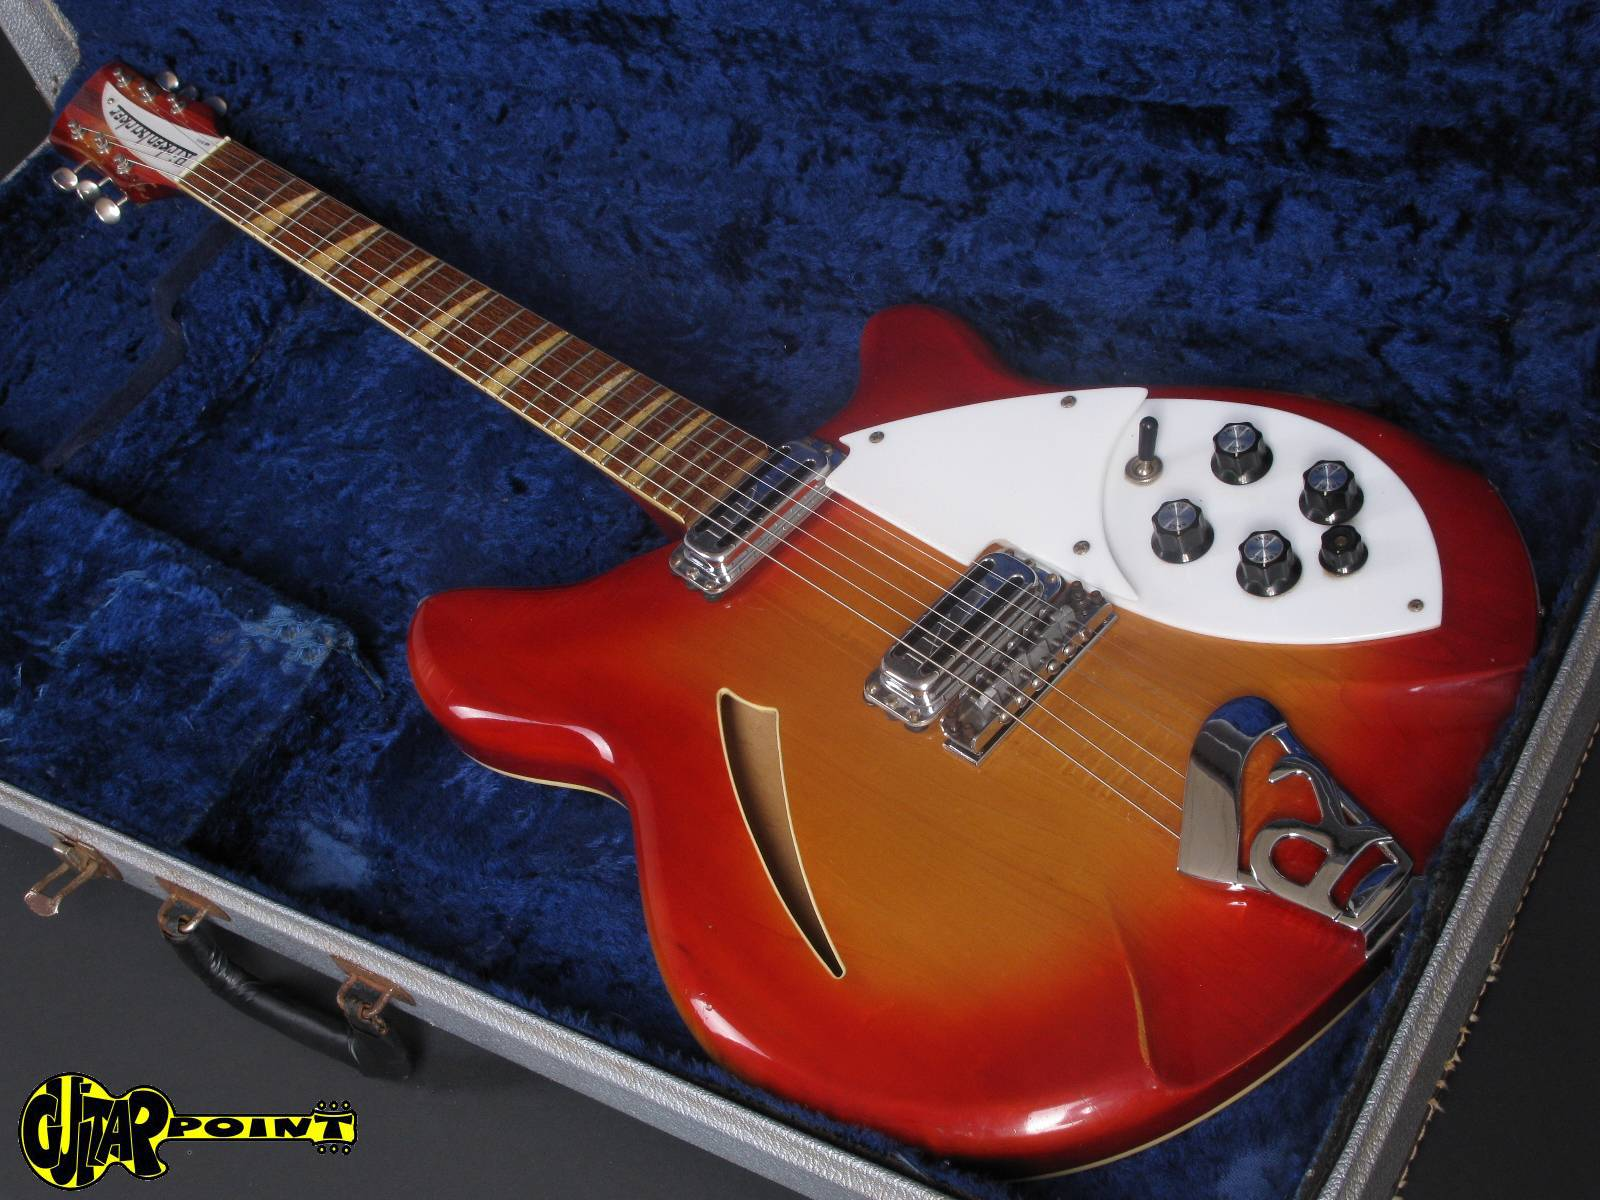 dating rickenbacker 360 360° view images rickenbacker rickenbacker 381v69 jetglo derived from a design dating back to 1957.